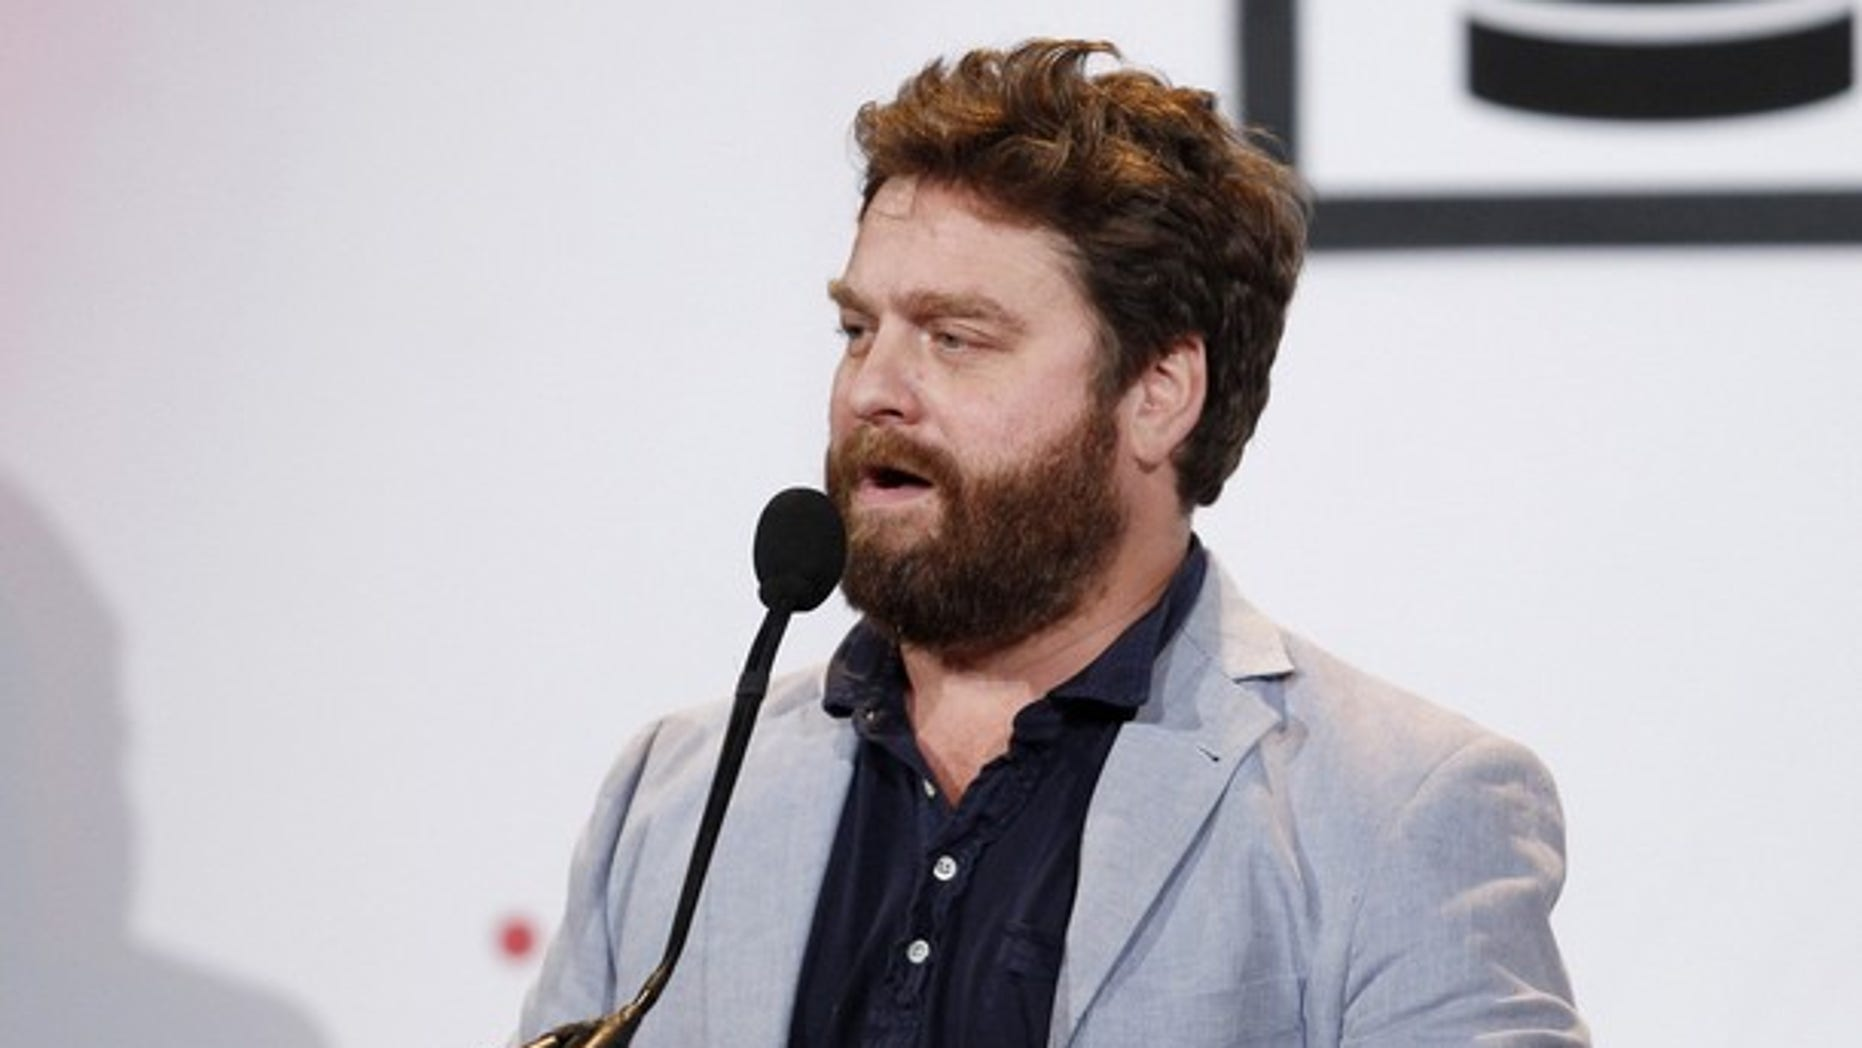 Actor Zach Galifianakis accepts an award for Best Comedy site at the Webby Awards in New York June 14, 2010.